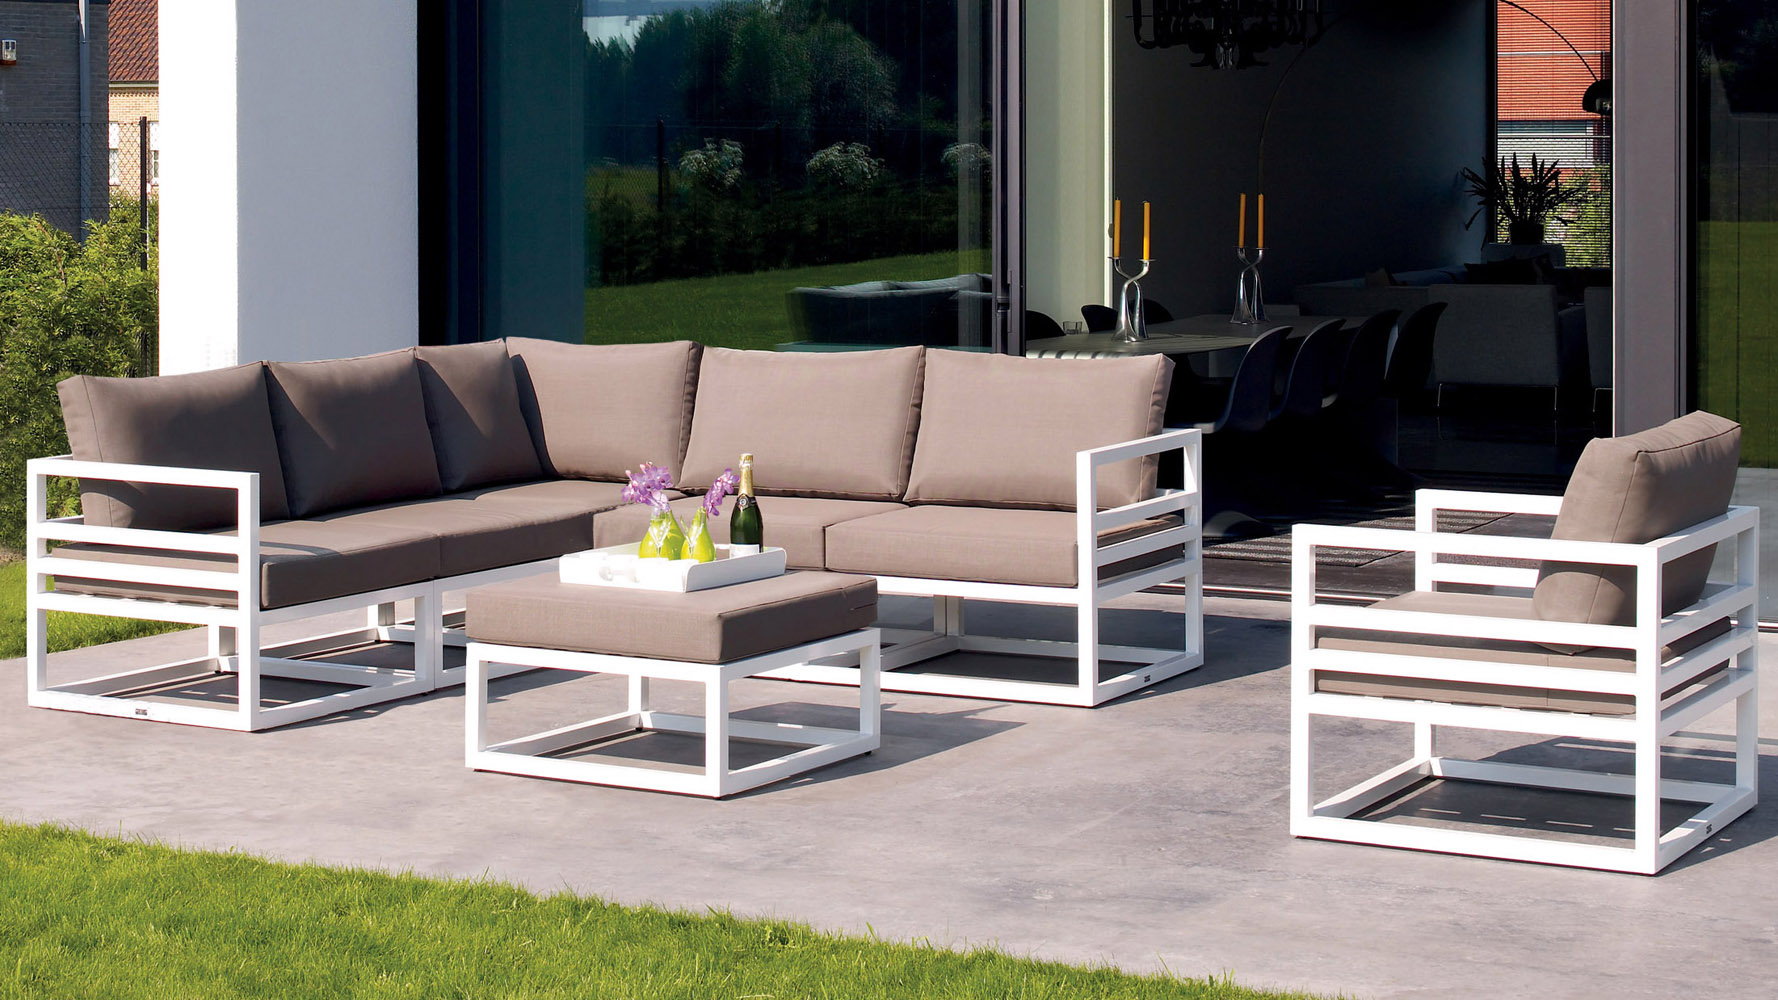 Outdoor Lounge Sofa White Aluminum Fabri Outdoor Lounge Set With Taupe